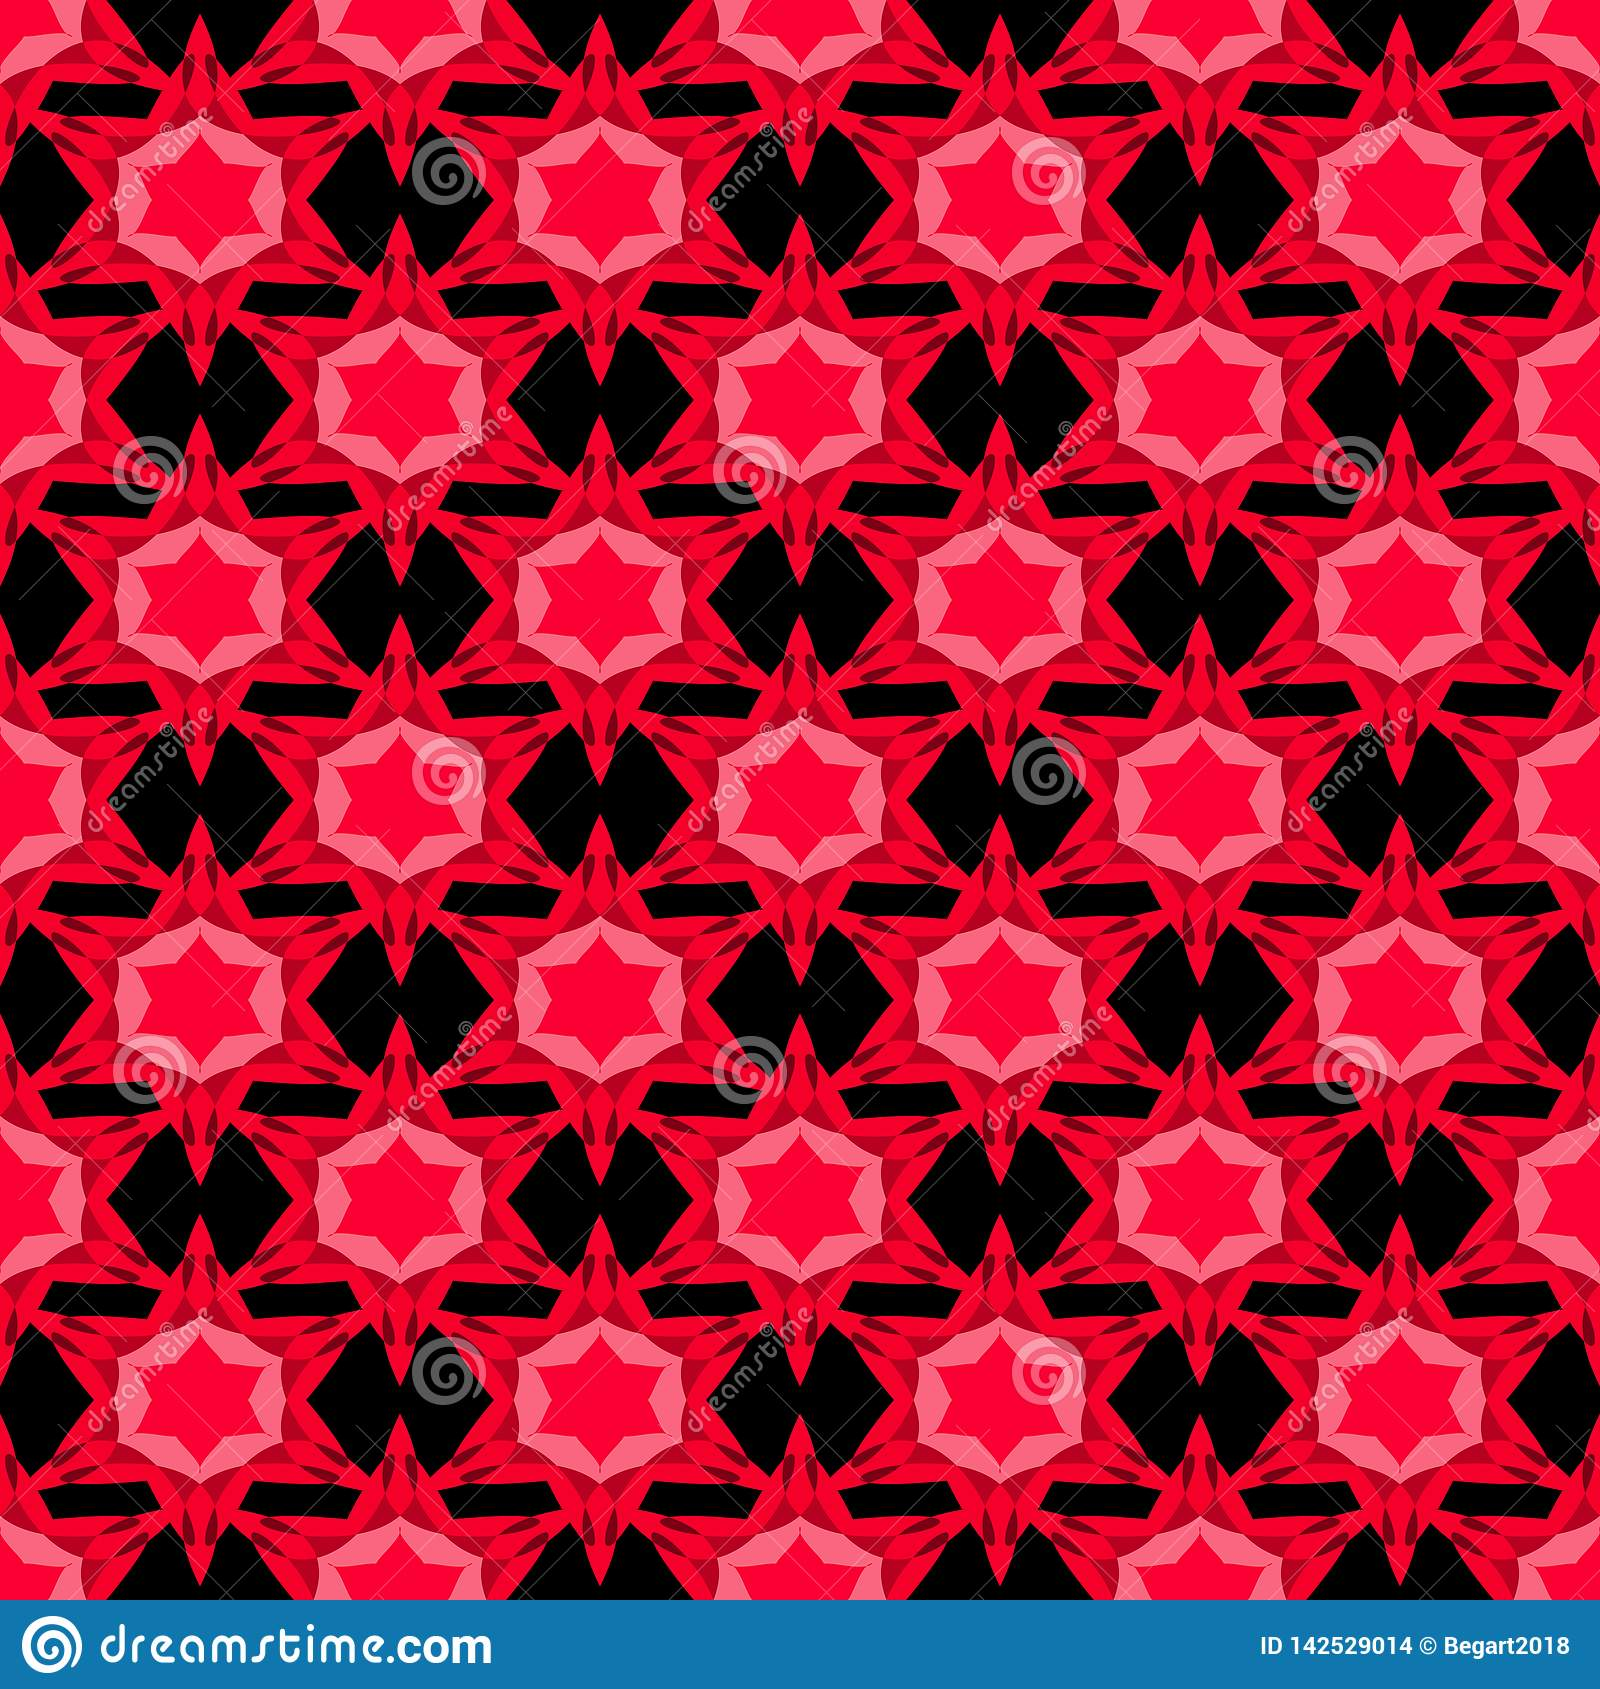 Seamless pattern with red stars